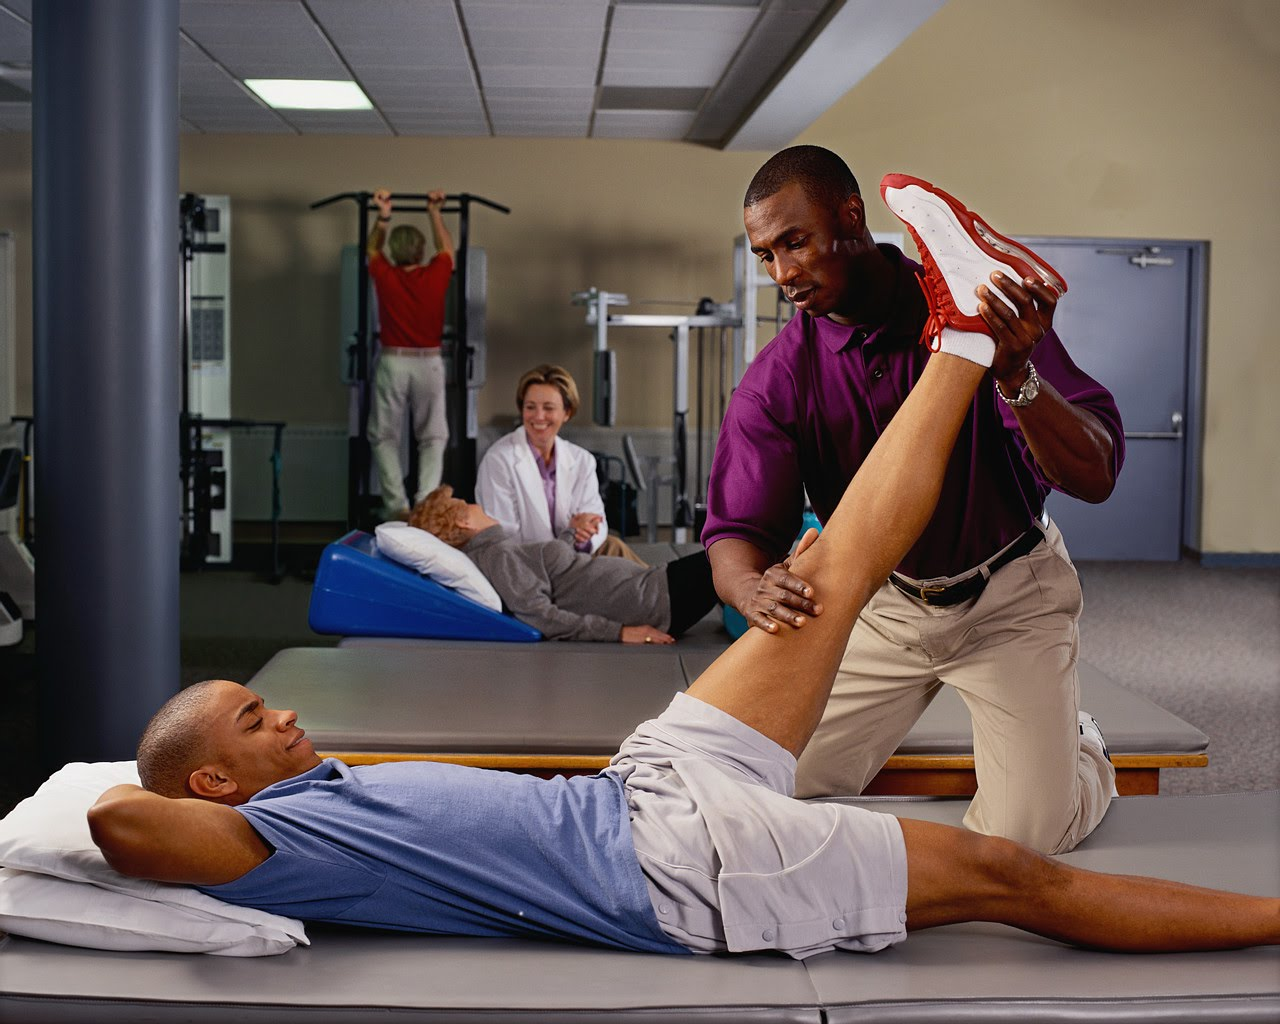 Physiotherapy: The Role Of A Physiotherapist In Sports Medicine